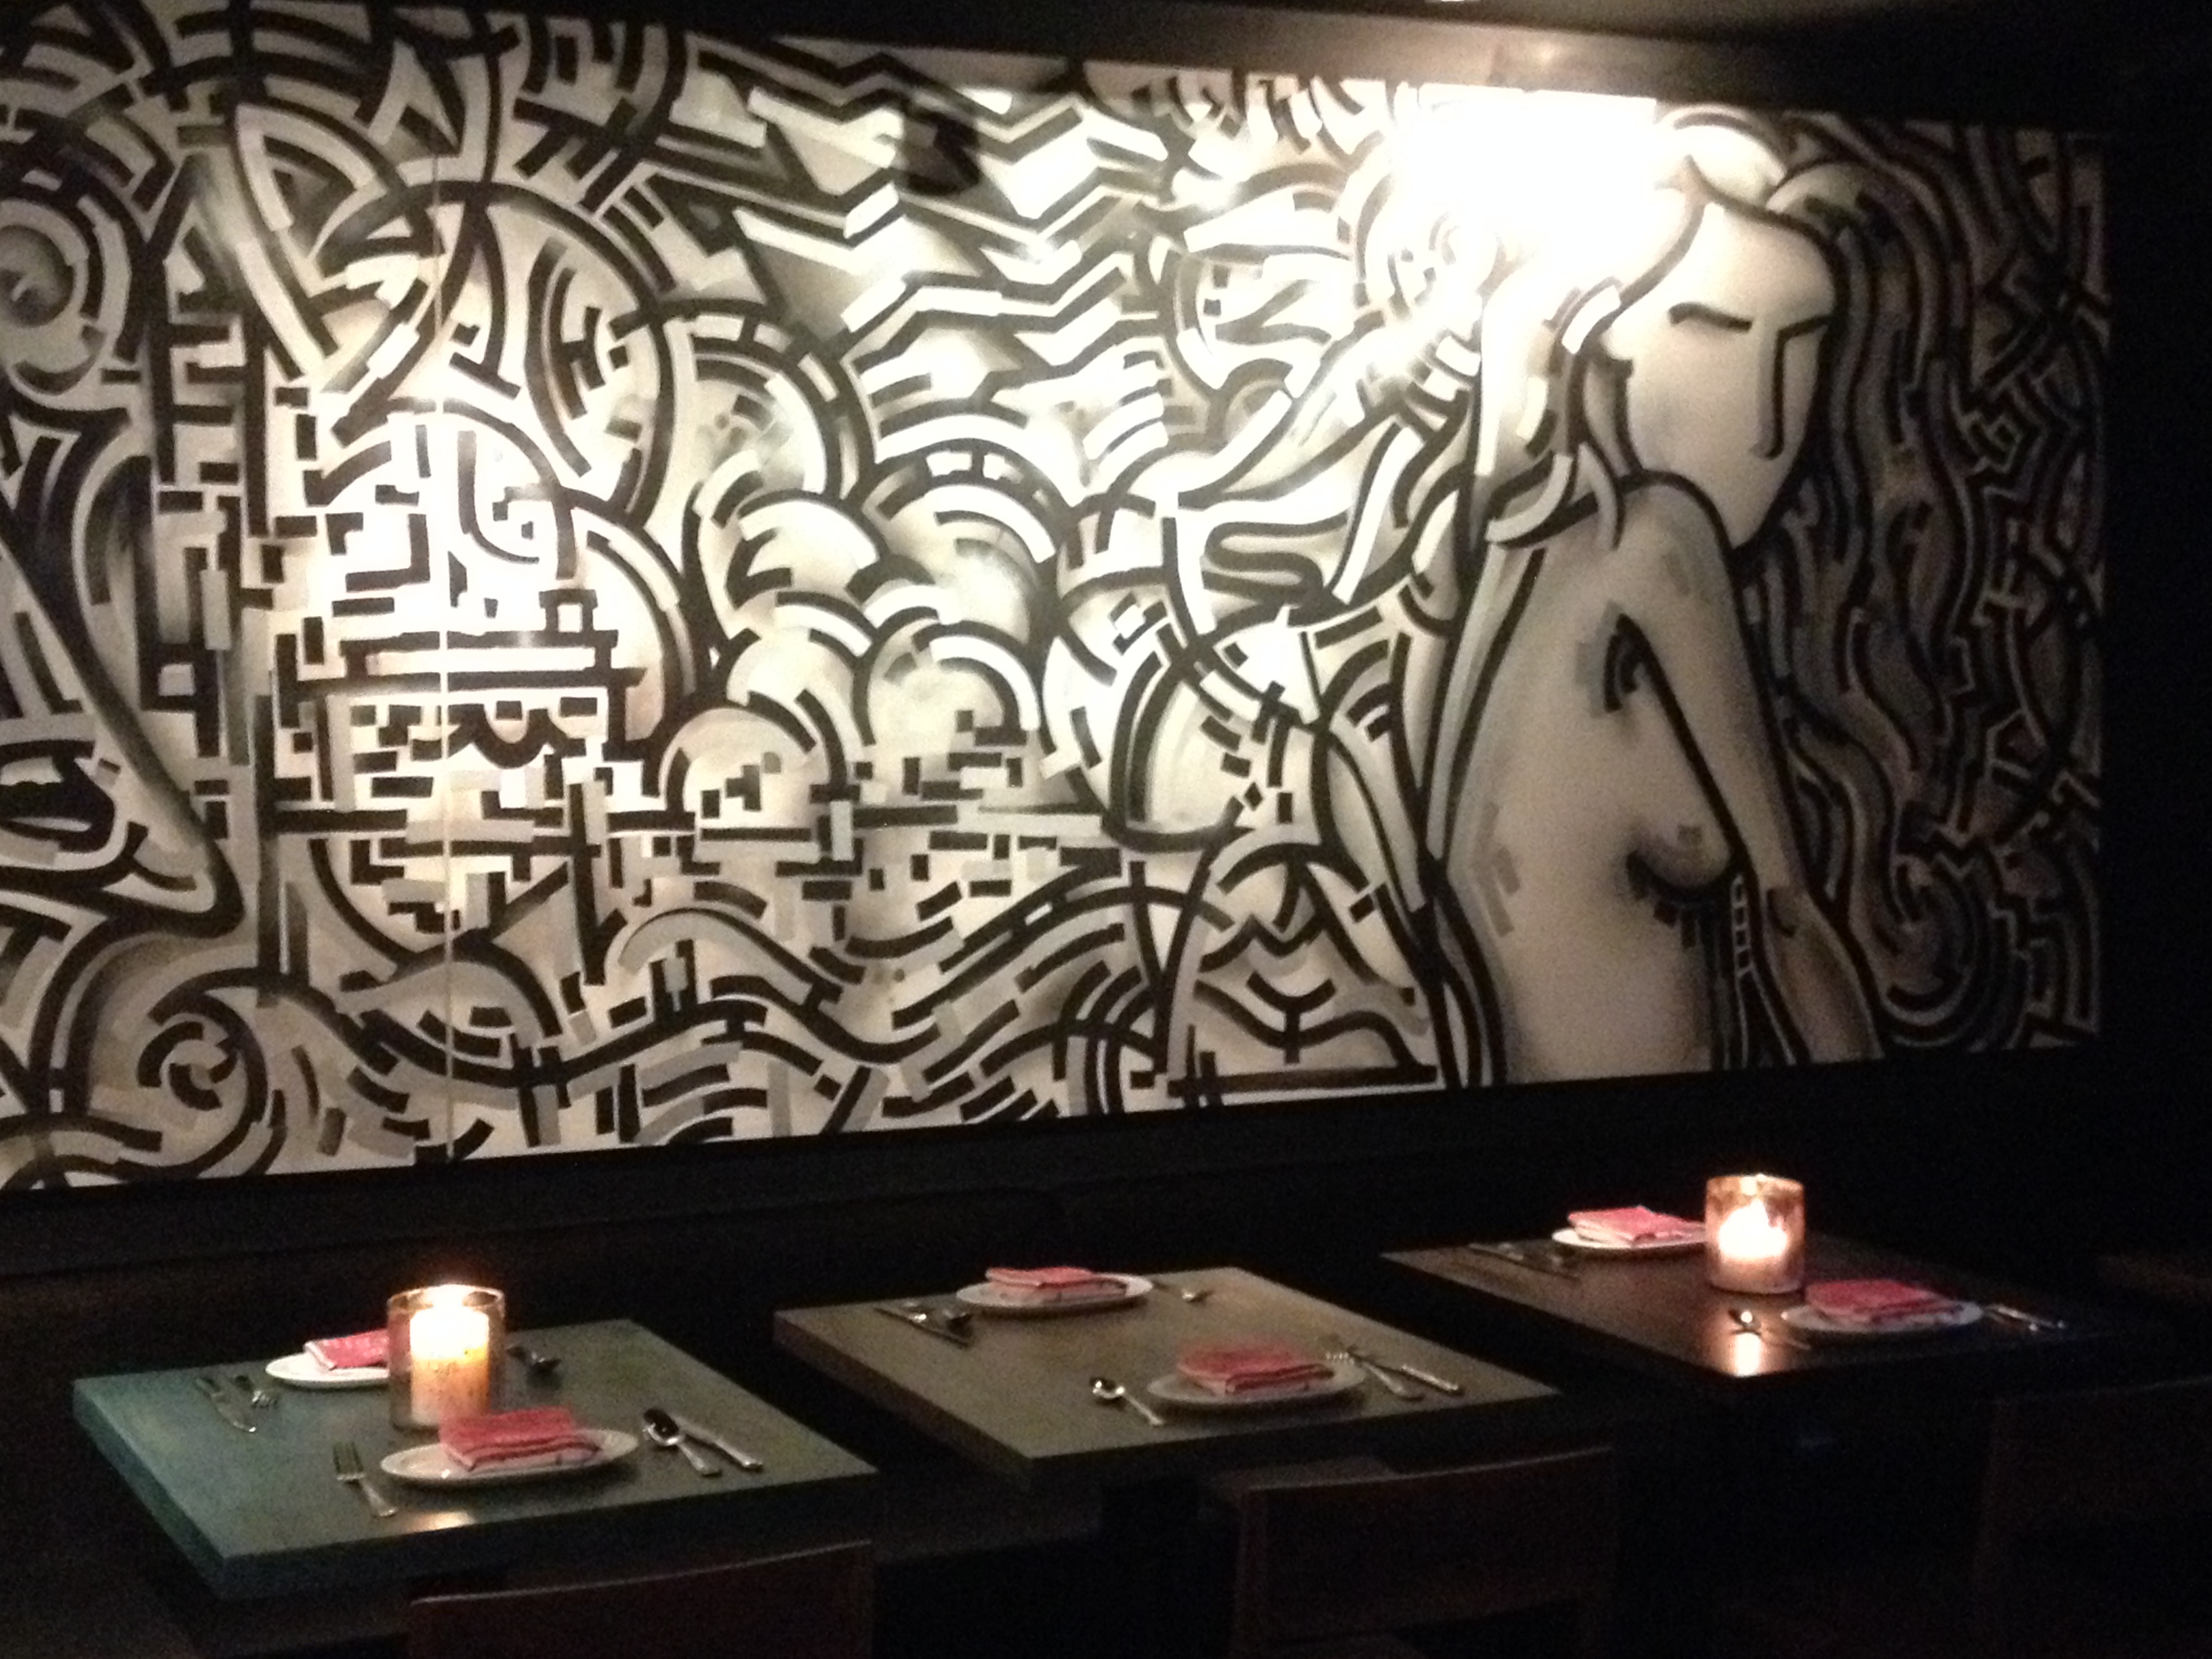 Botequim's graffiti murals ... can you hear the samba rhythms?